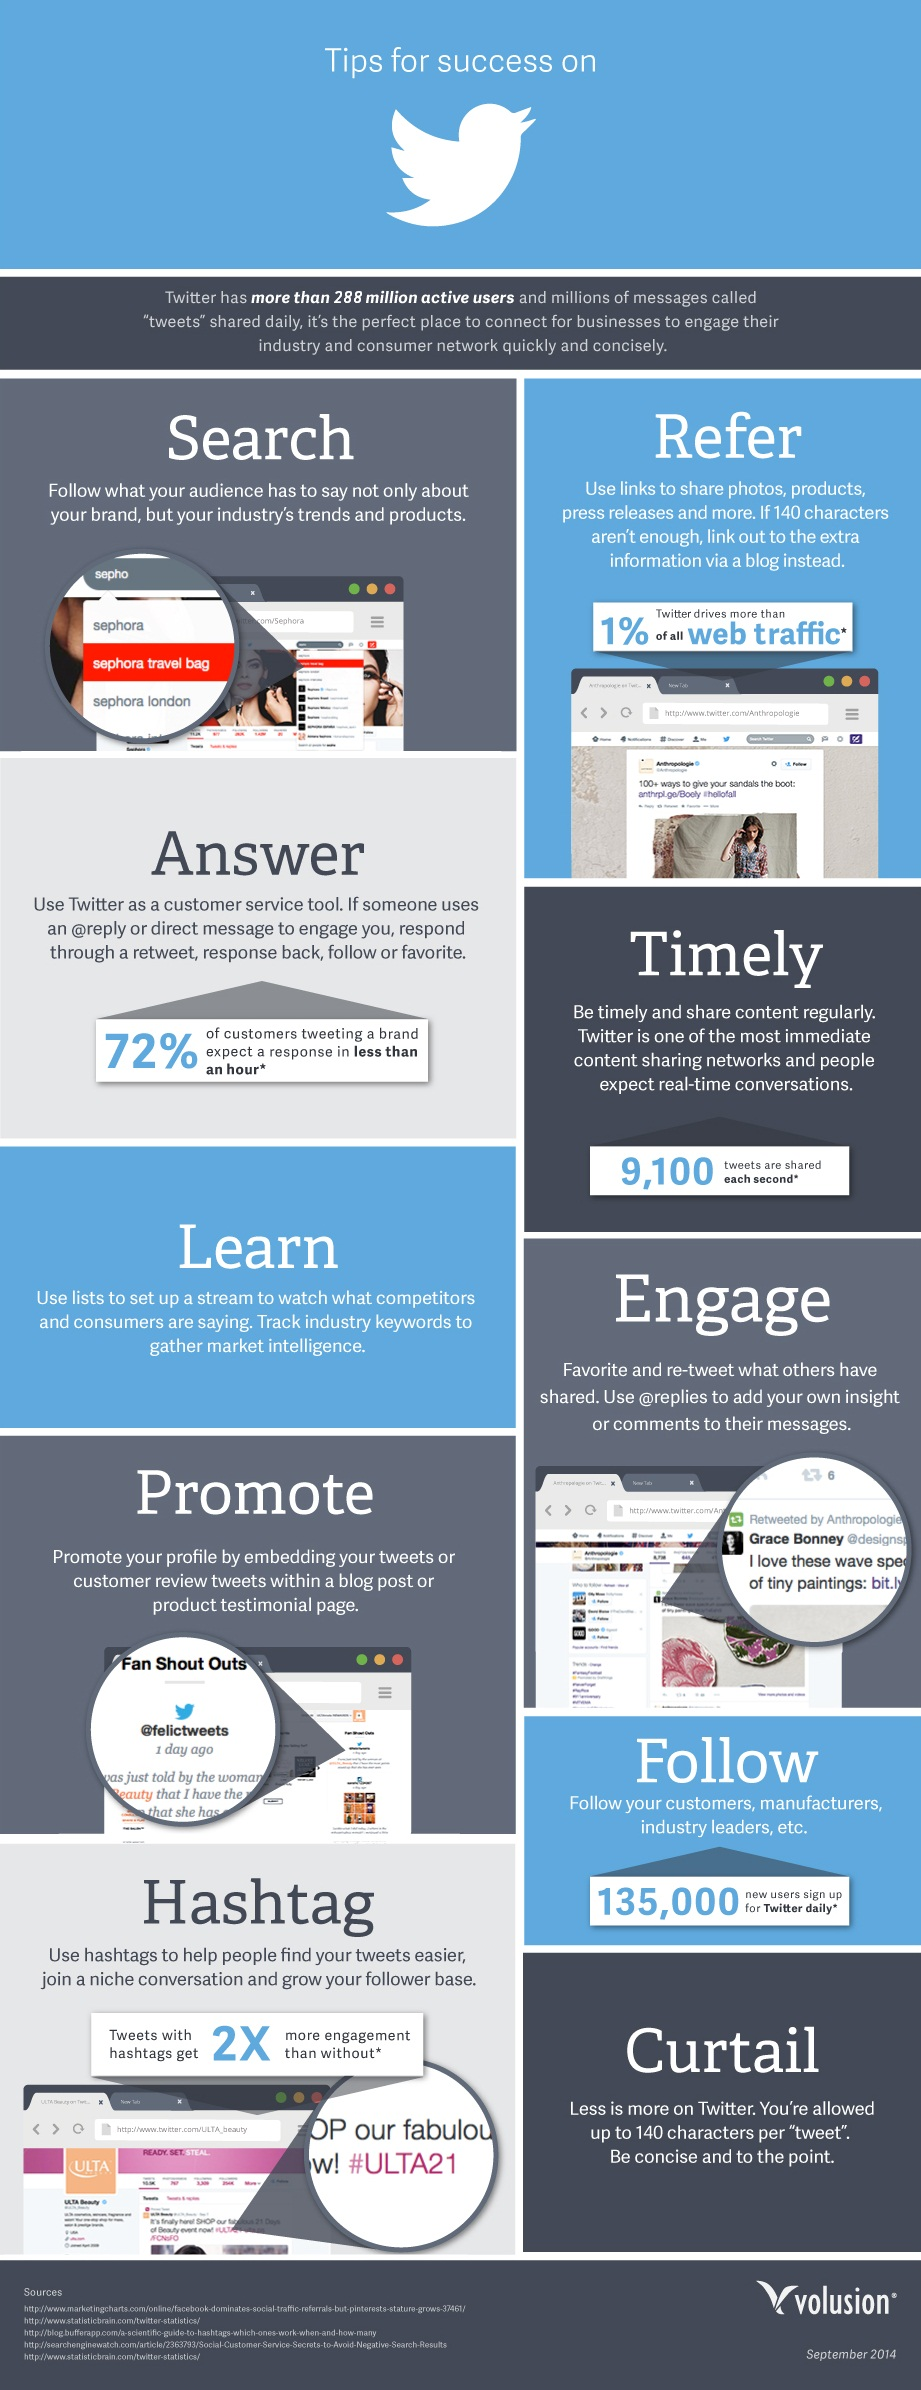 10 Strategic Ways To Increase #Twitter Engagement - #infographic #socialmedia